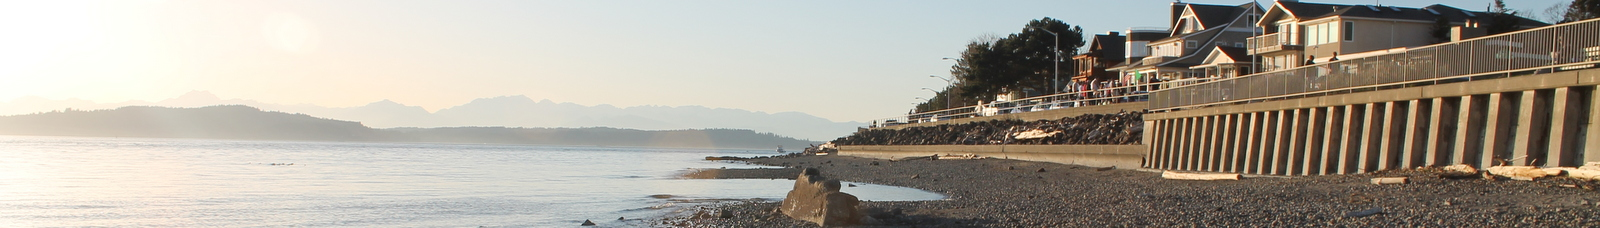 Lumpytrout Wikivoyage Page Banner Washington Alki Point.JPG